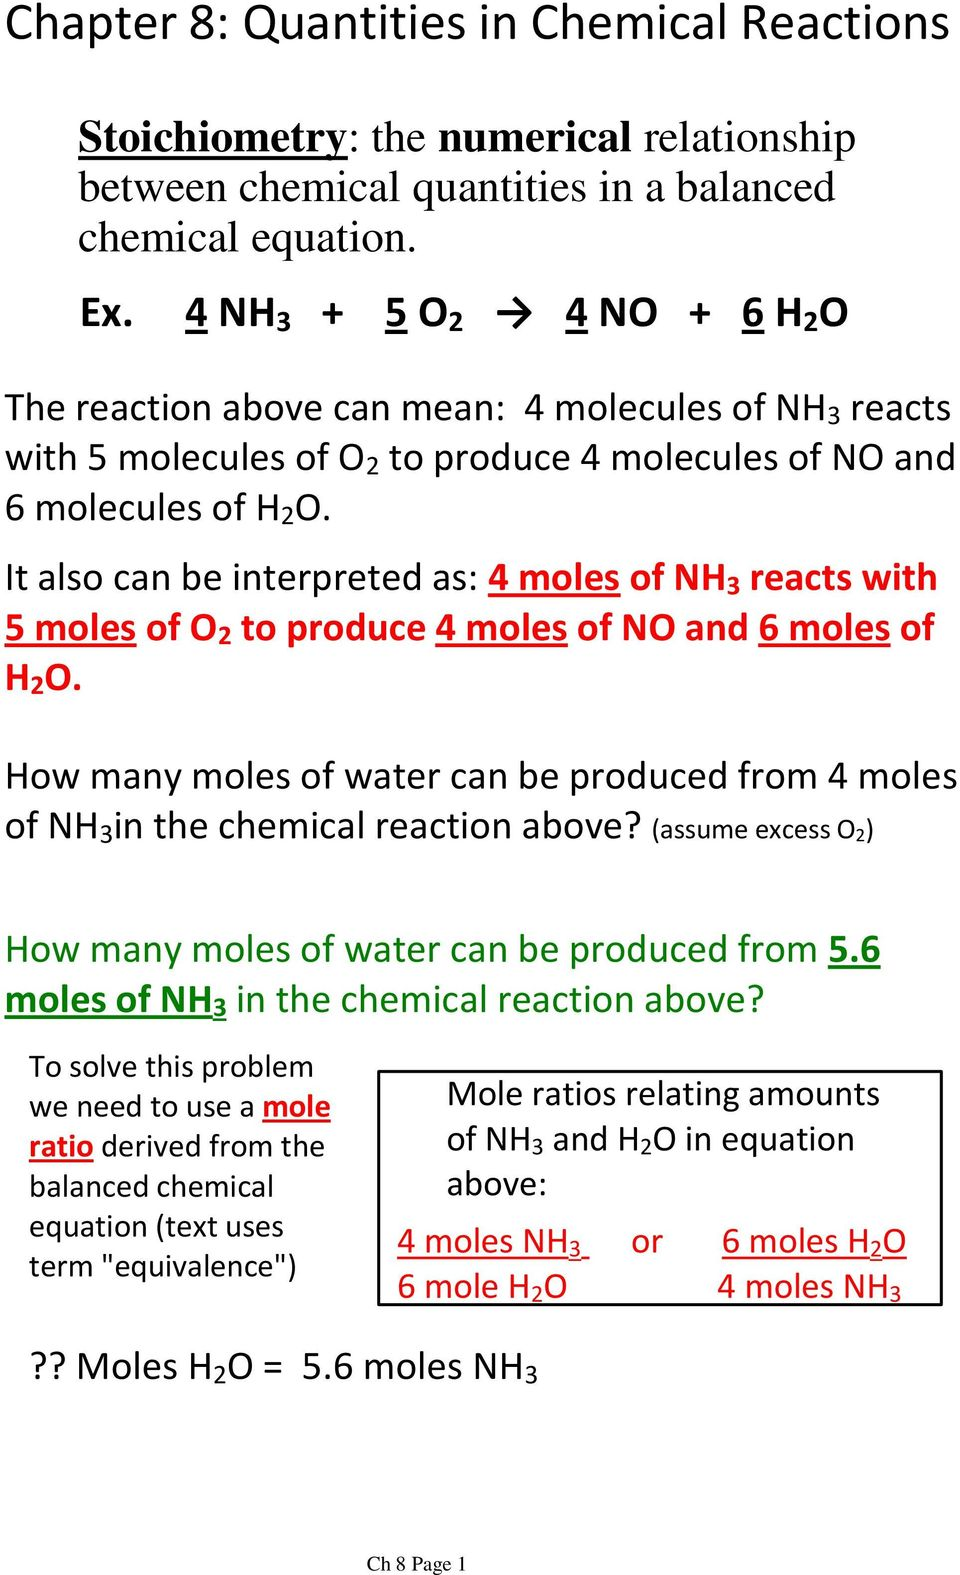 It also can be interpreted as: 4 molesof NH 3 reacts with 5 molesof O 2 to produce 4 molesof NO and 6 molesof H 2 O.